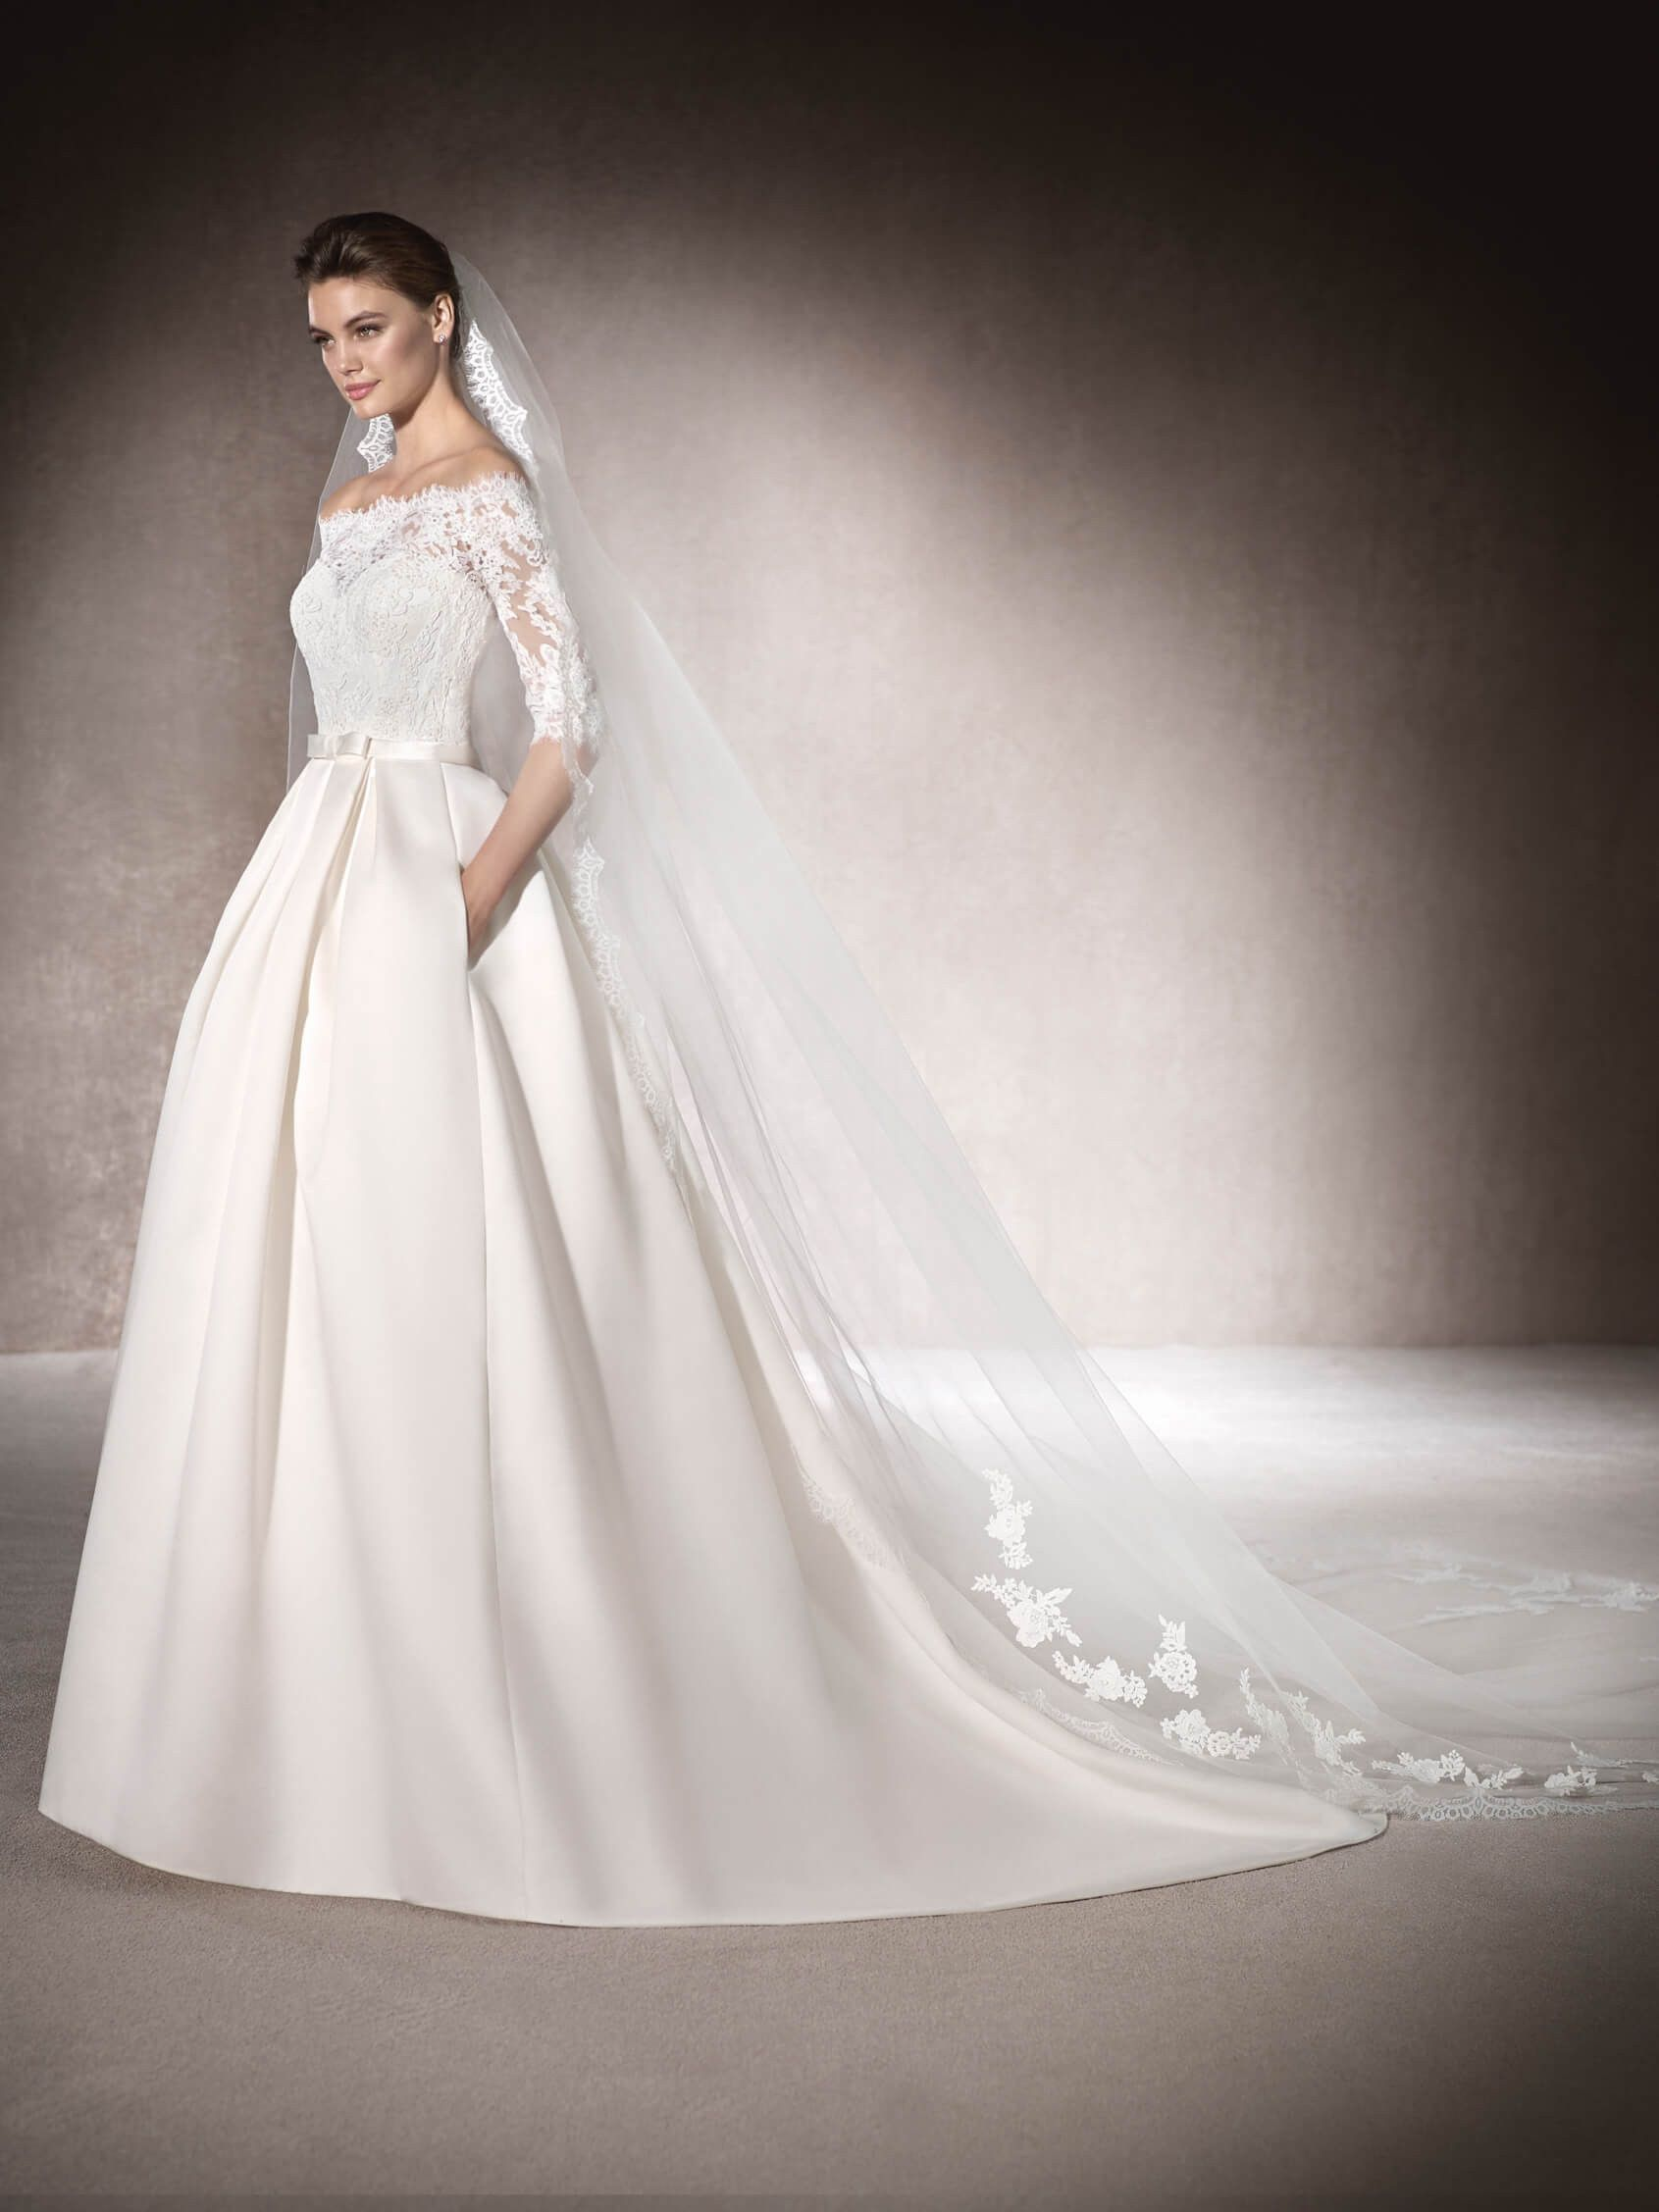 Princess wedding dress Malca | happily ever after. | Pinterest ...